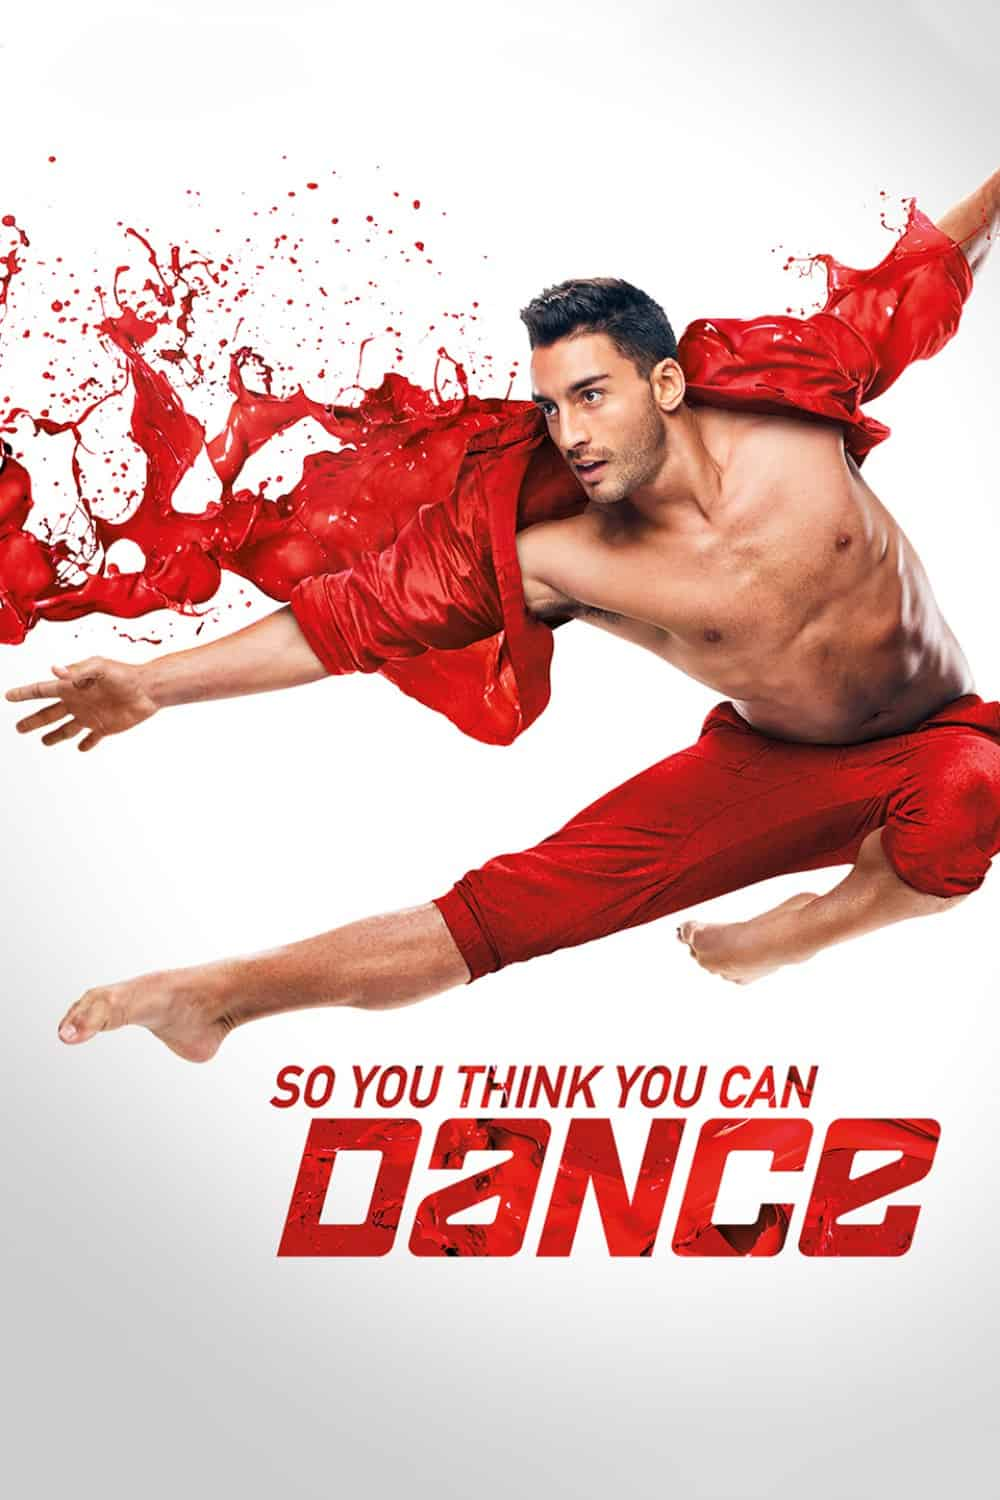 So You Think You Can Dance, 2005